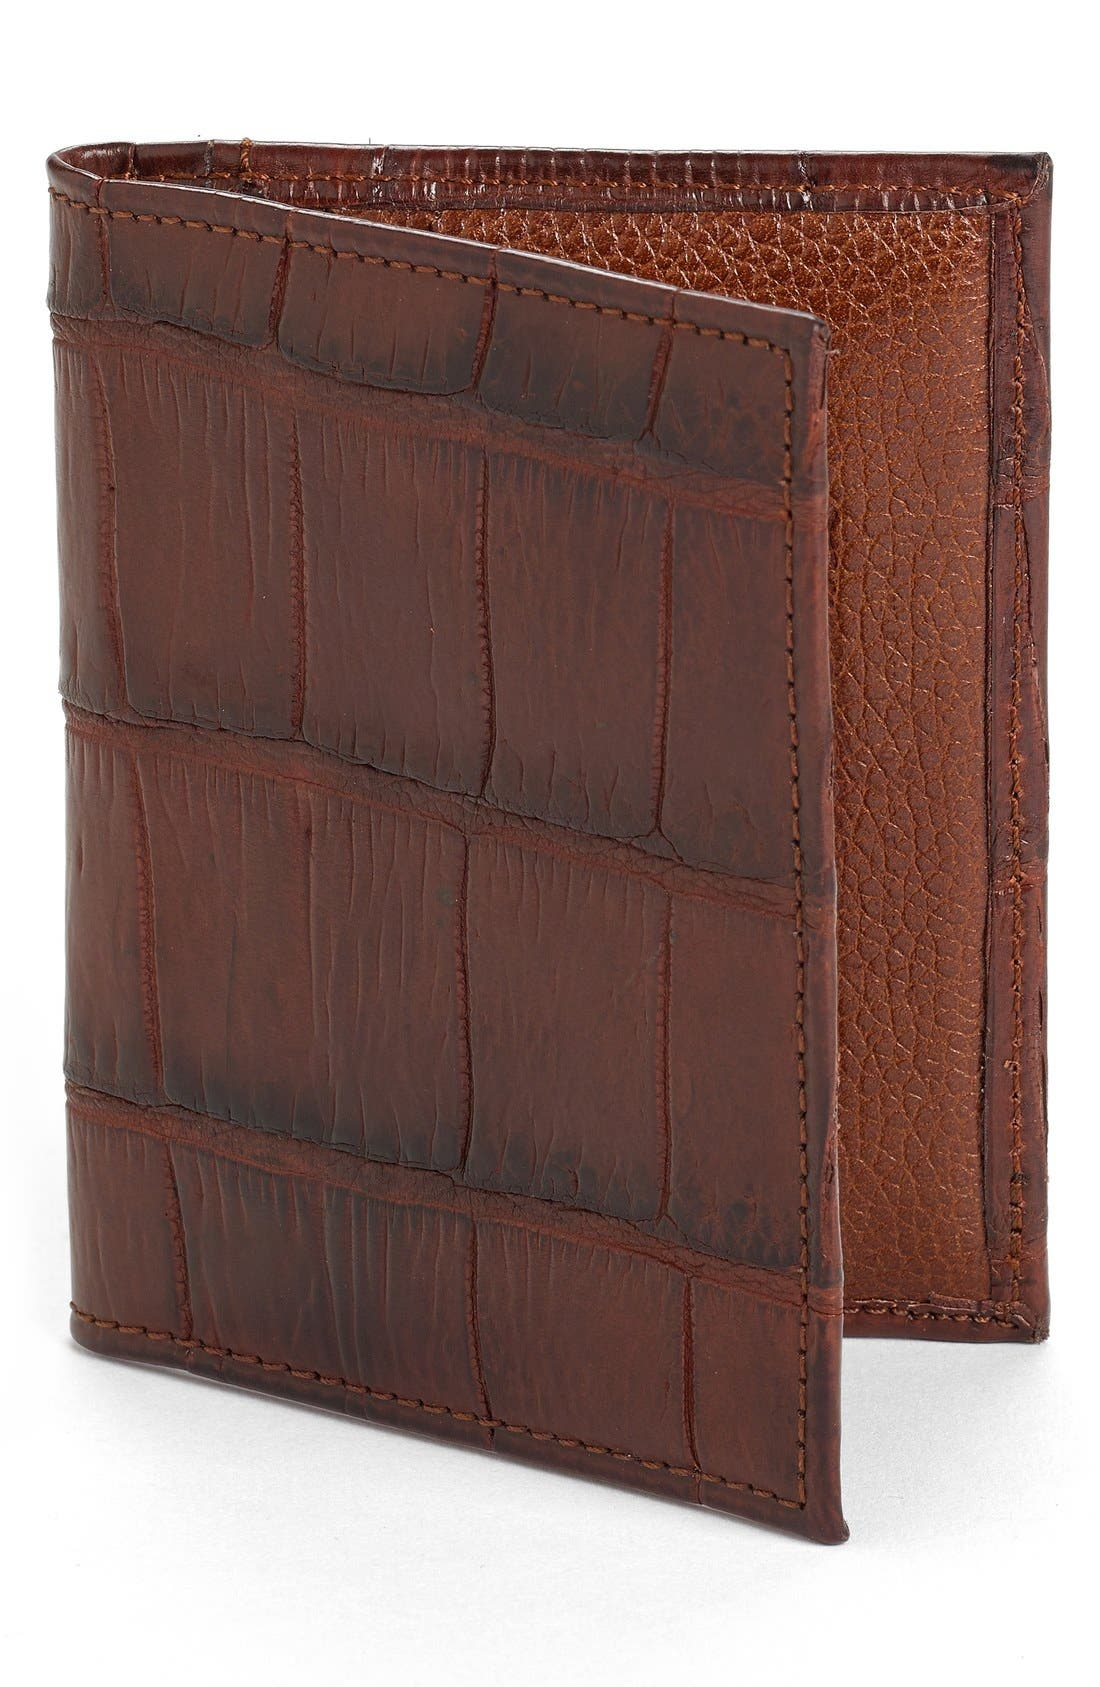 Martin Dingman Jameson Matte Finish Genuine Alligator Leather Wallet